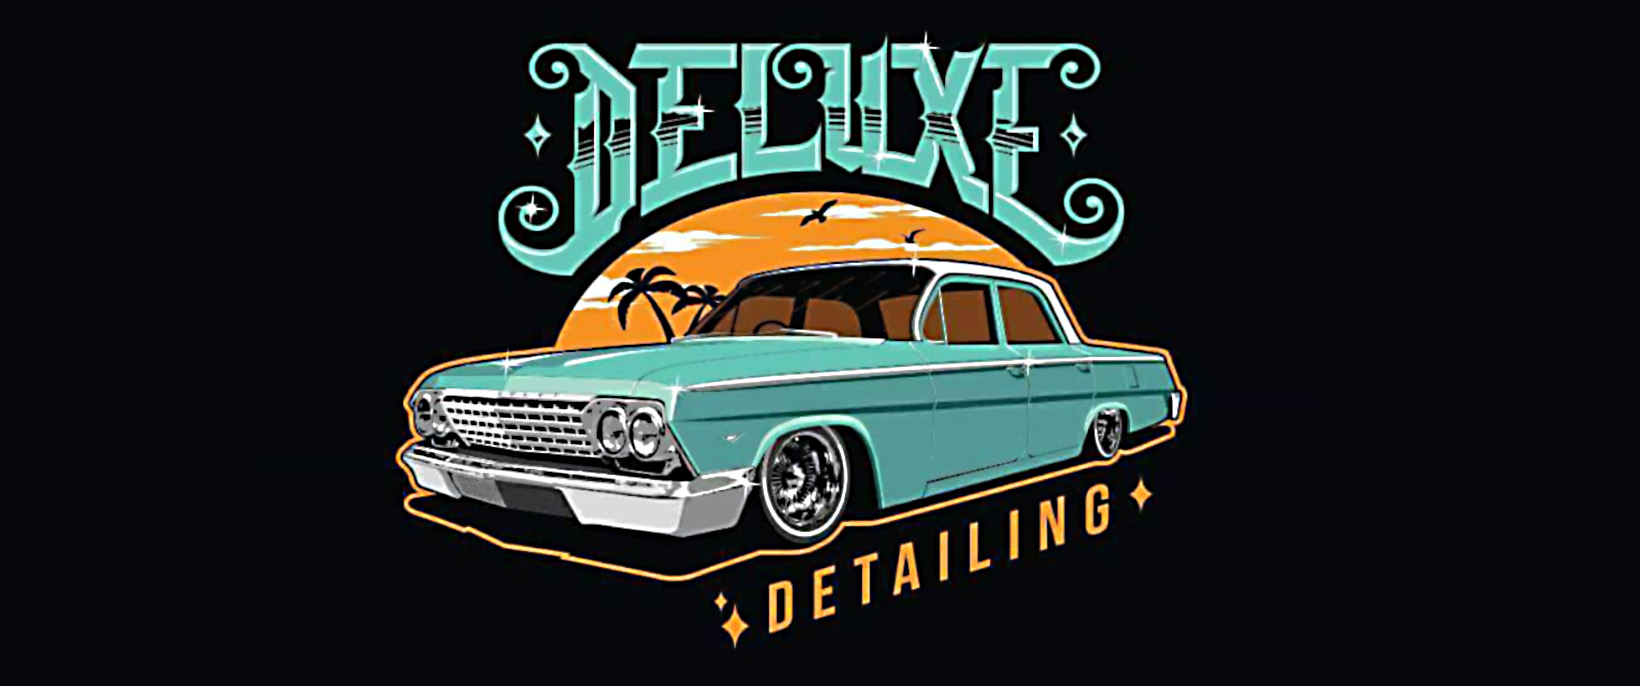 Deluxe Detailing – Car Detailing & Paint Protection